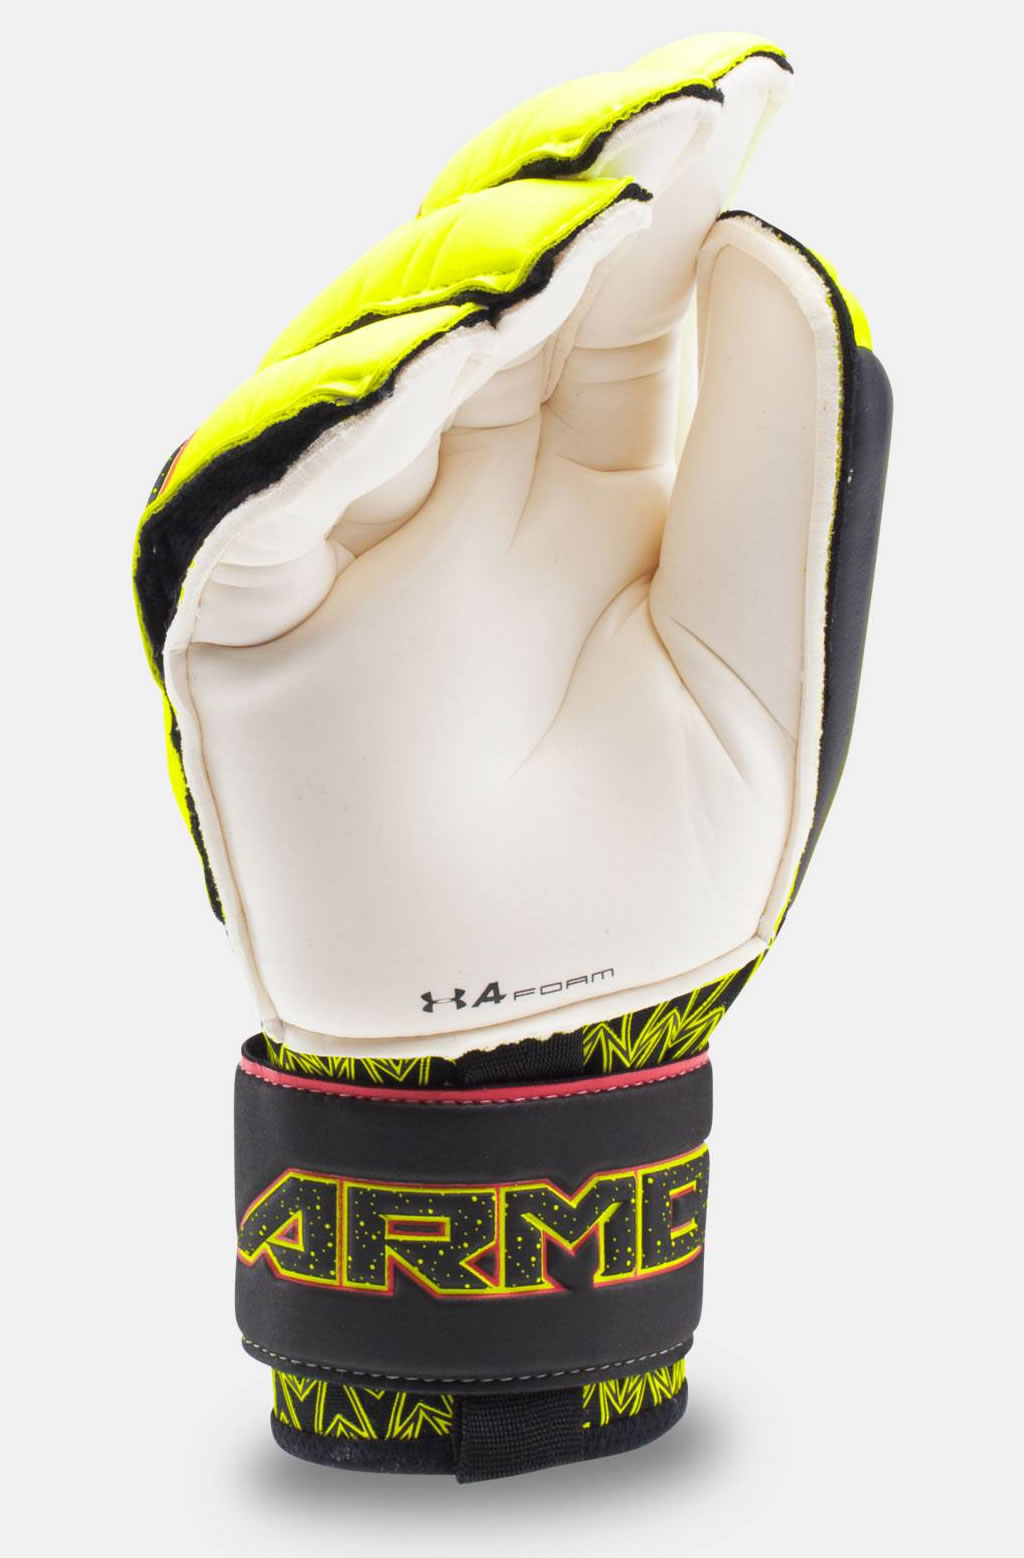 Under Armour Desafio Premier Goalie Glove